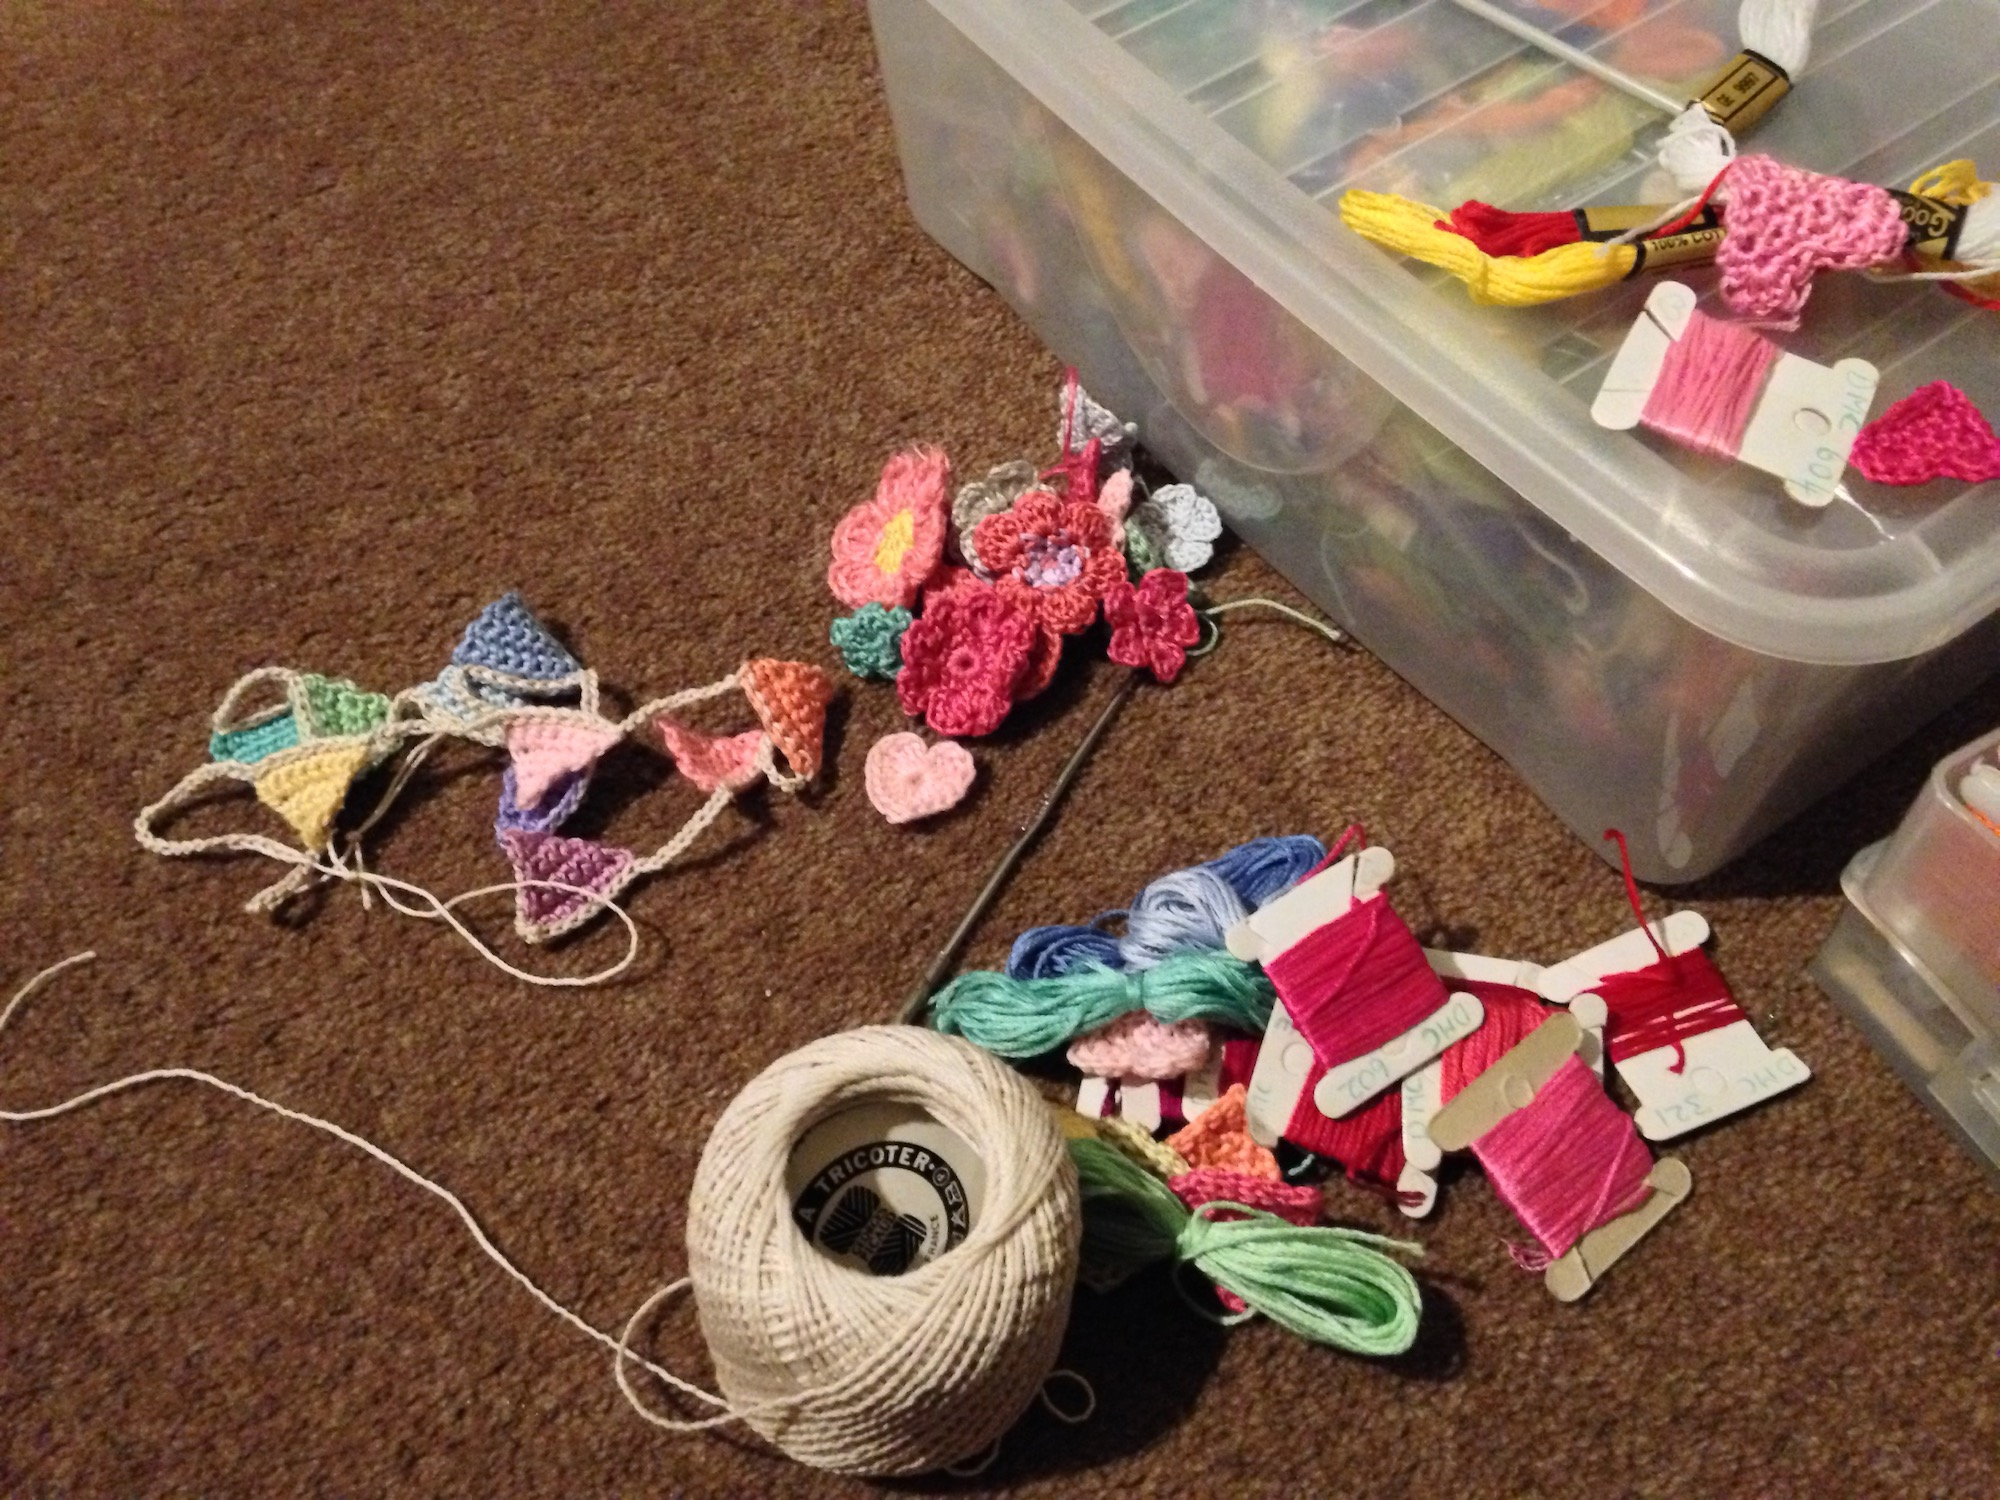 A selection of hearts, flowers and tiny hand crocheted items under construction.